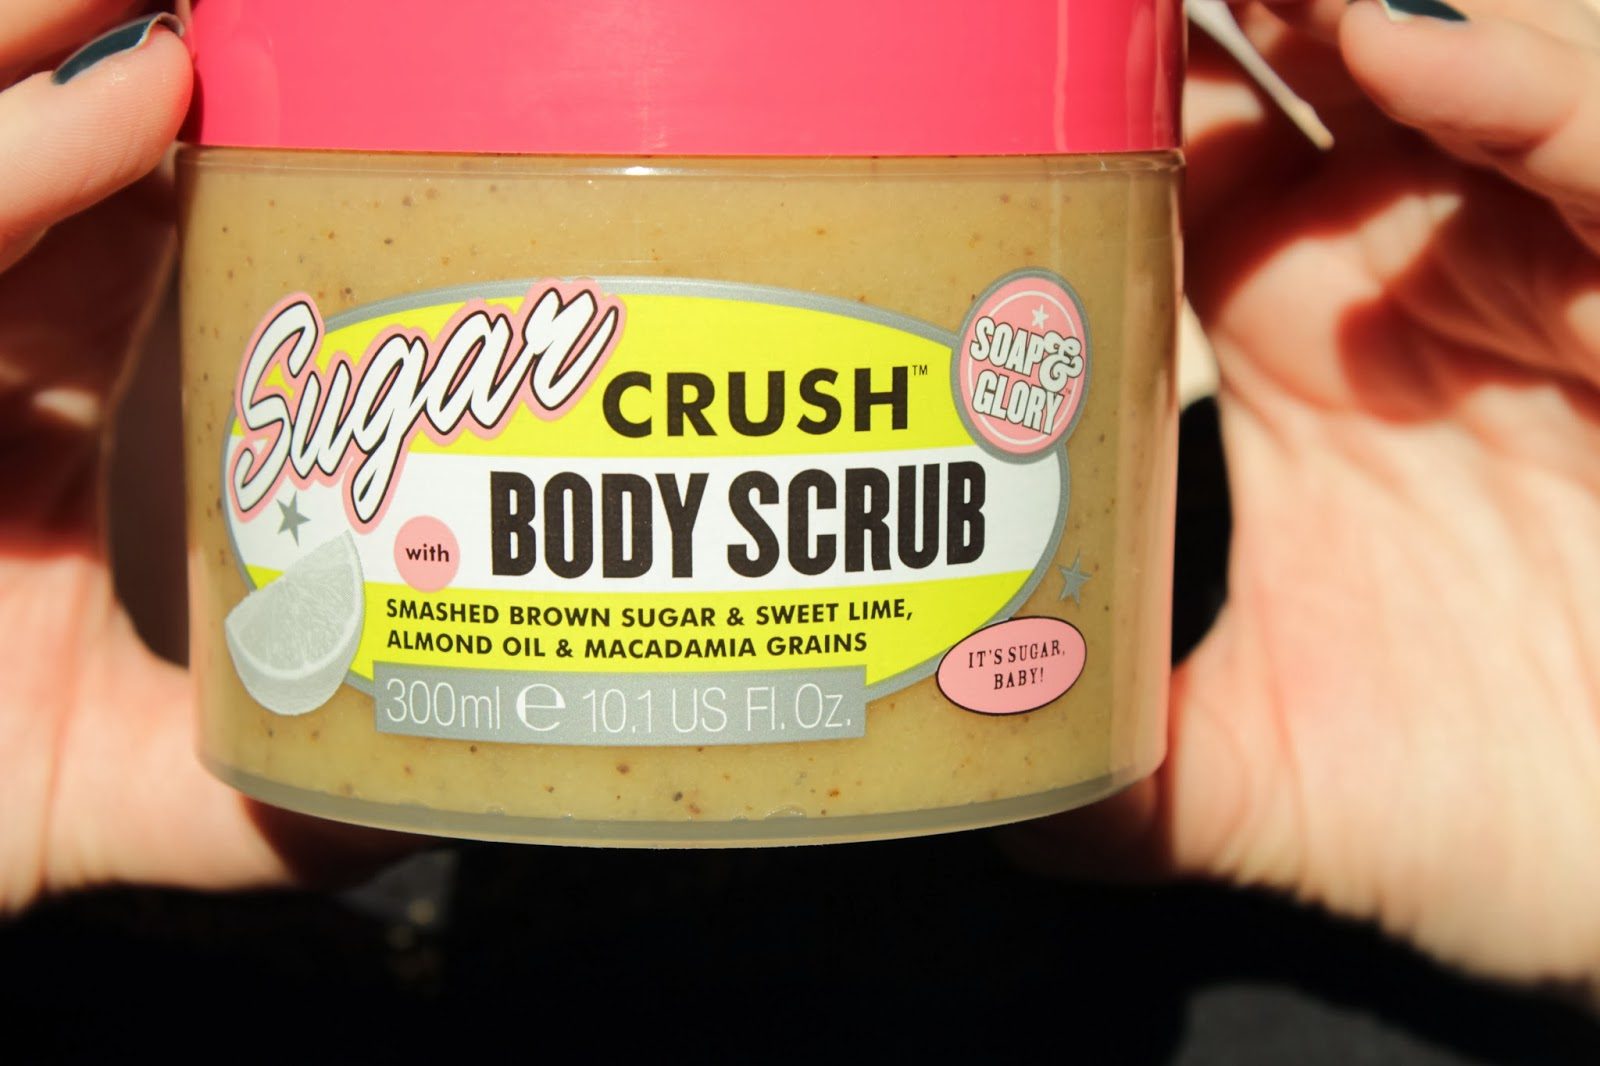 Tẩy Da Chết toàn Thân Soap and Glory Sugar Crush Body Scrub 300ml